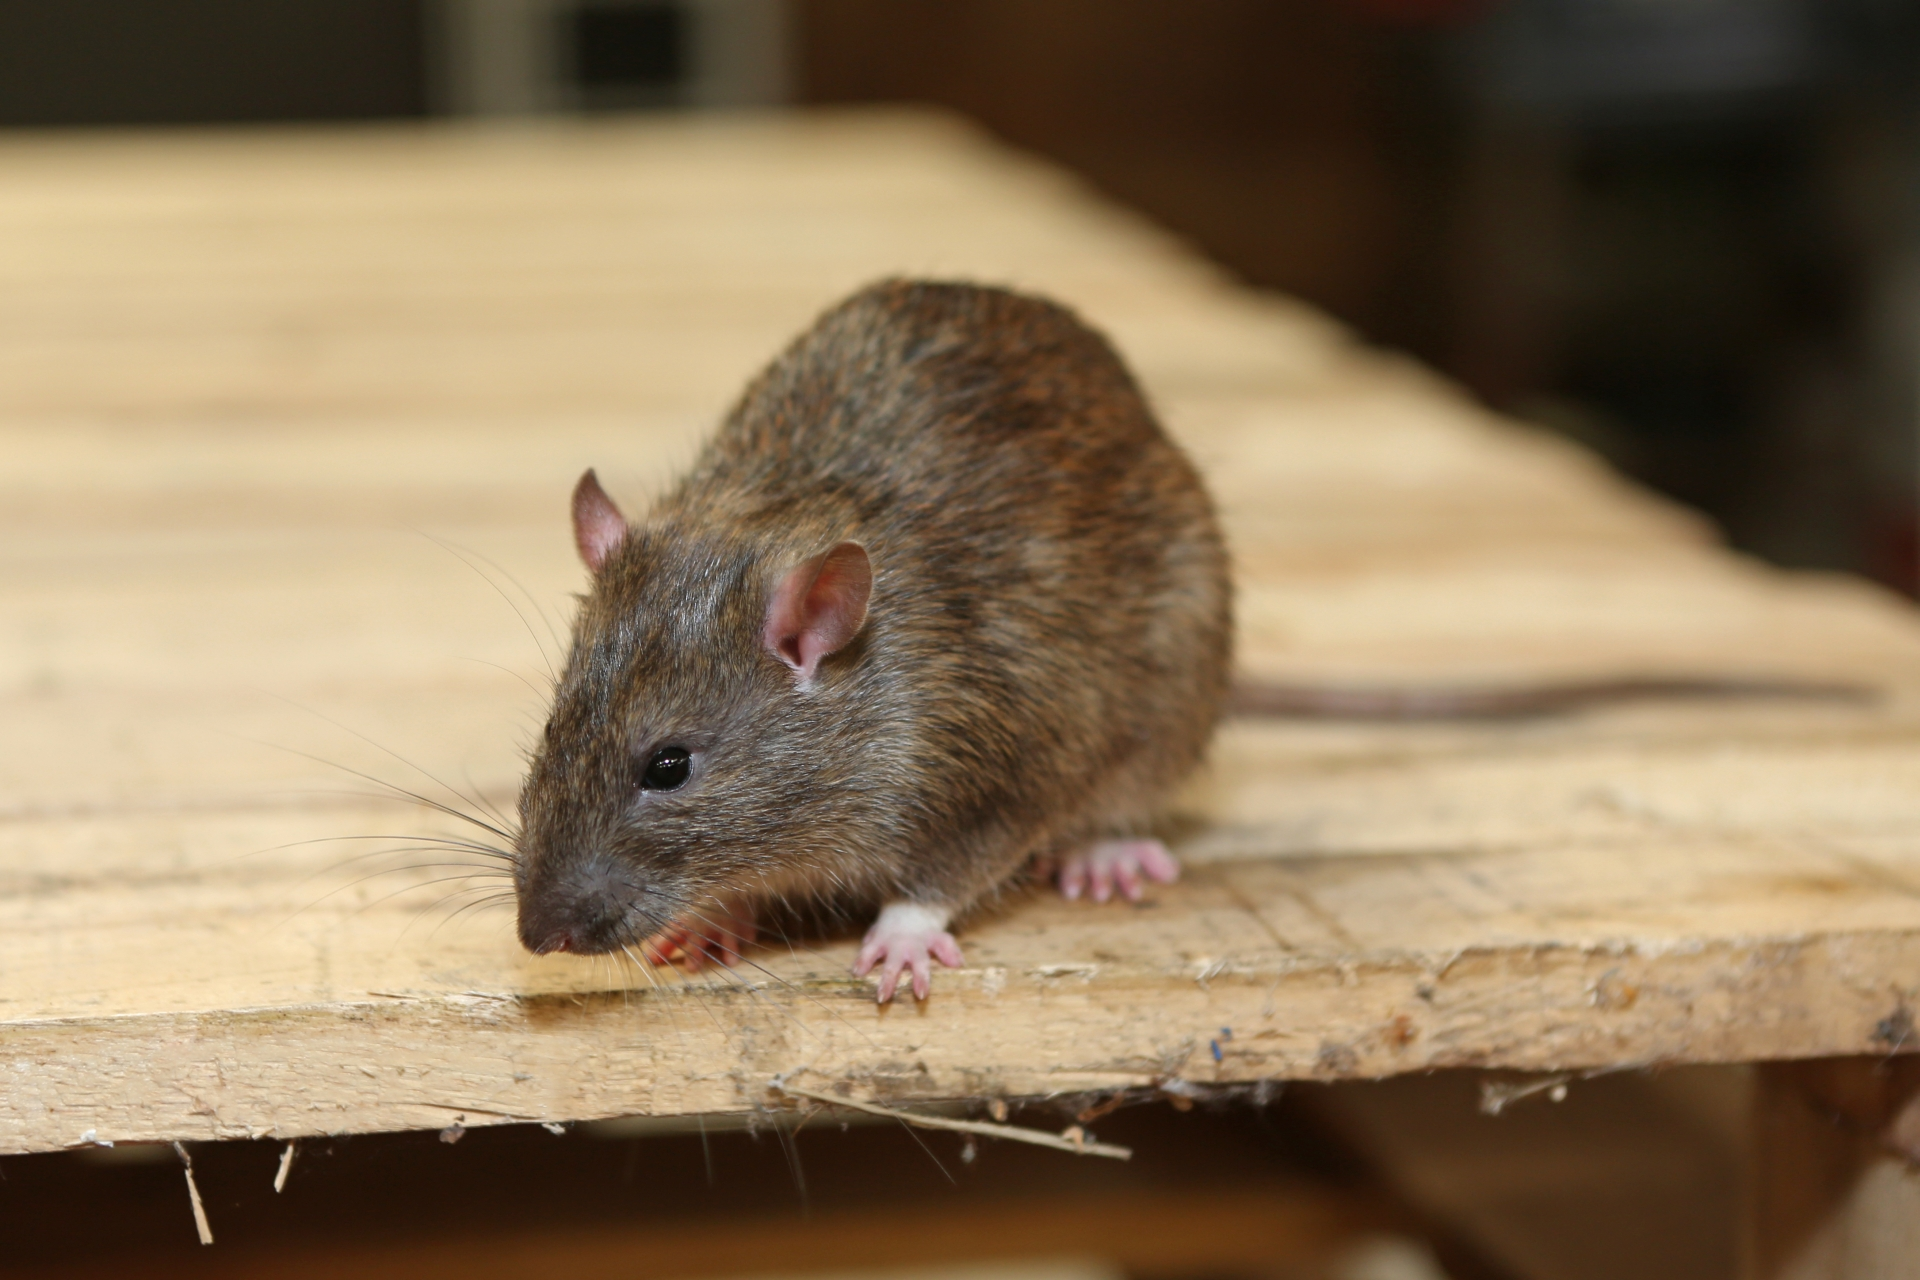 Rat Infestation, Pest Control in Tulse Hill, West Norwood, SE27. Call Now 020 8166 9746